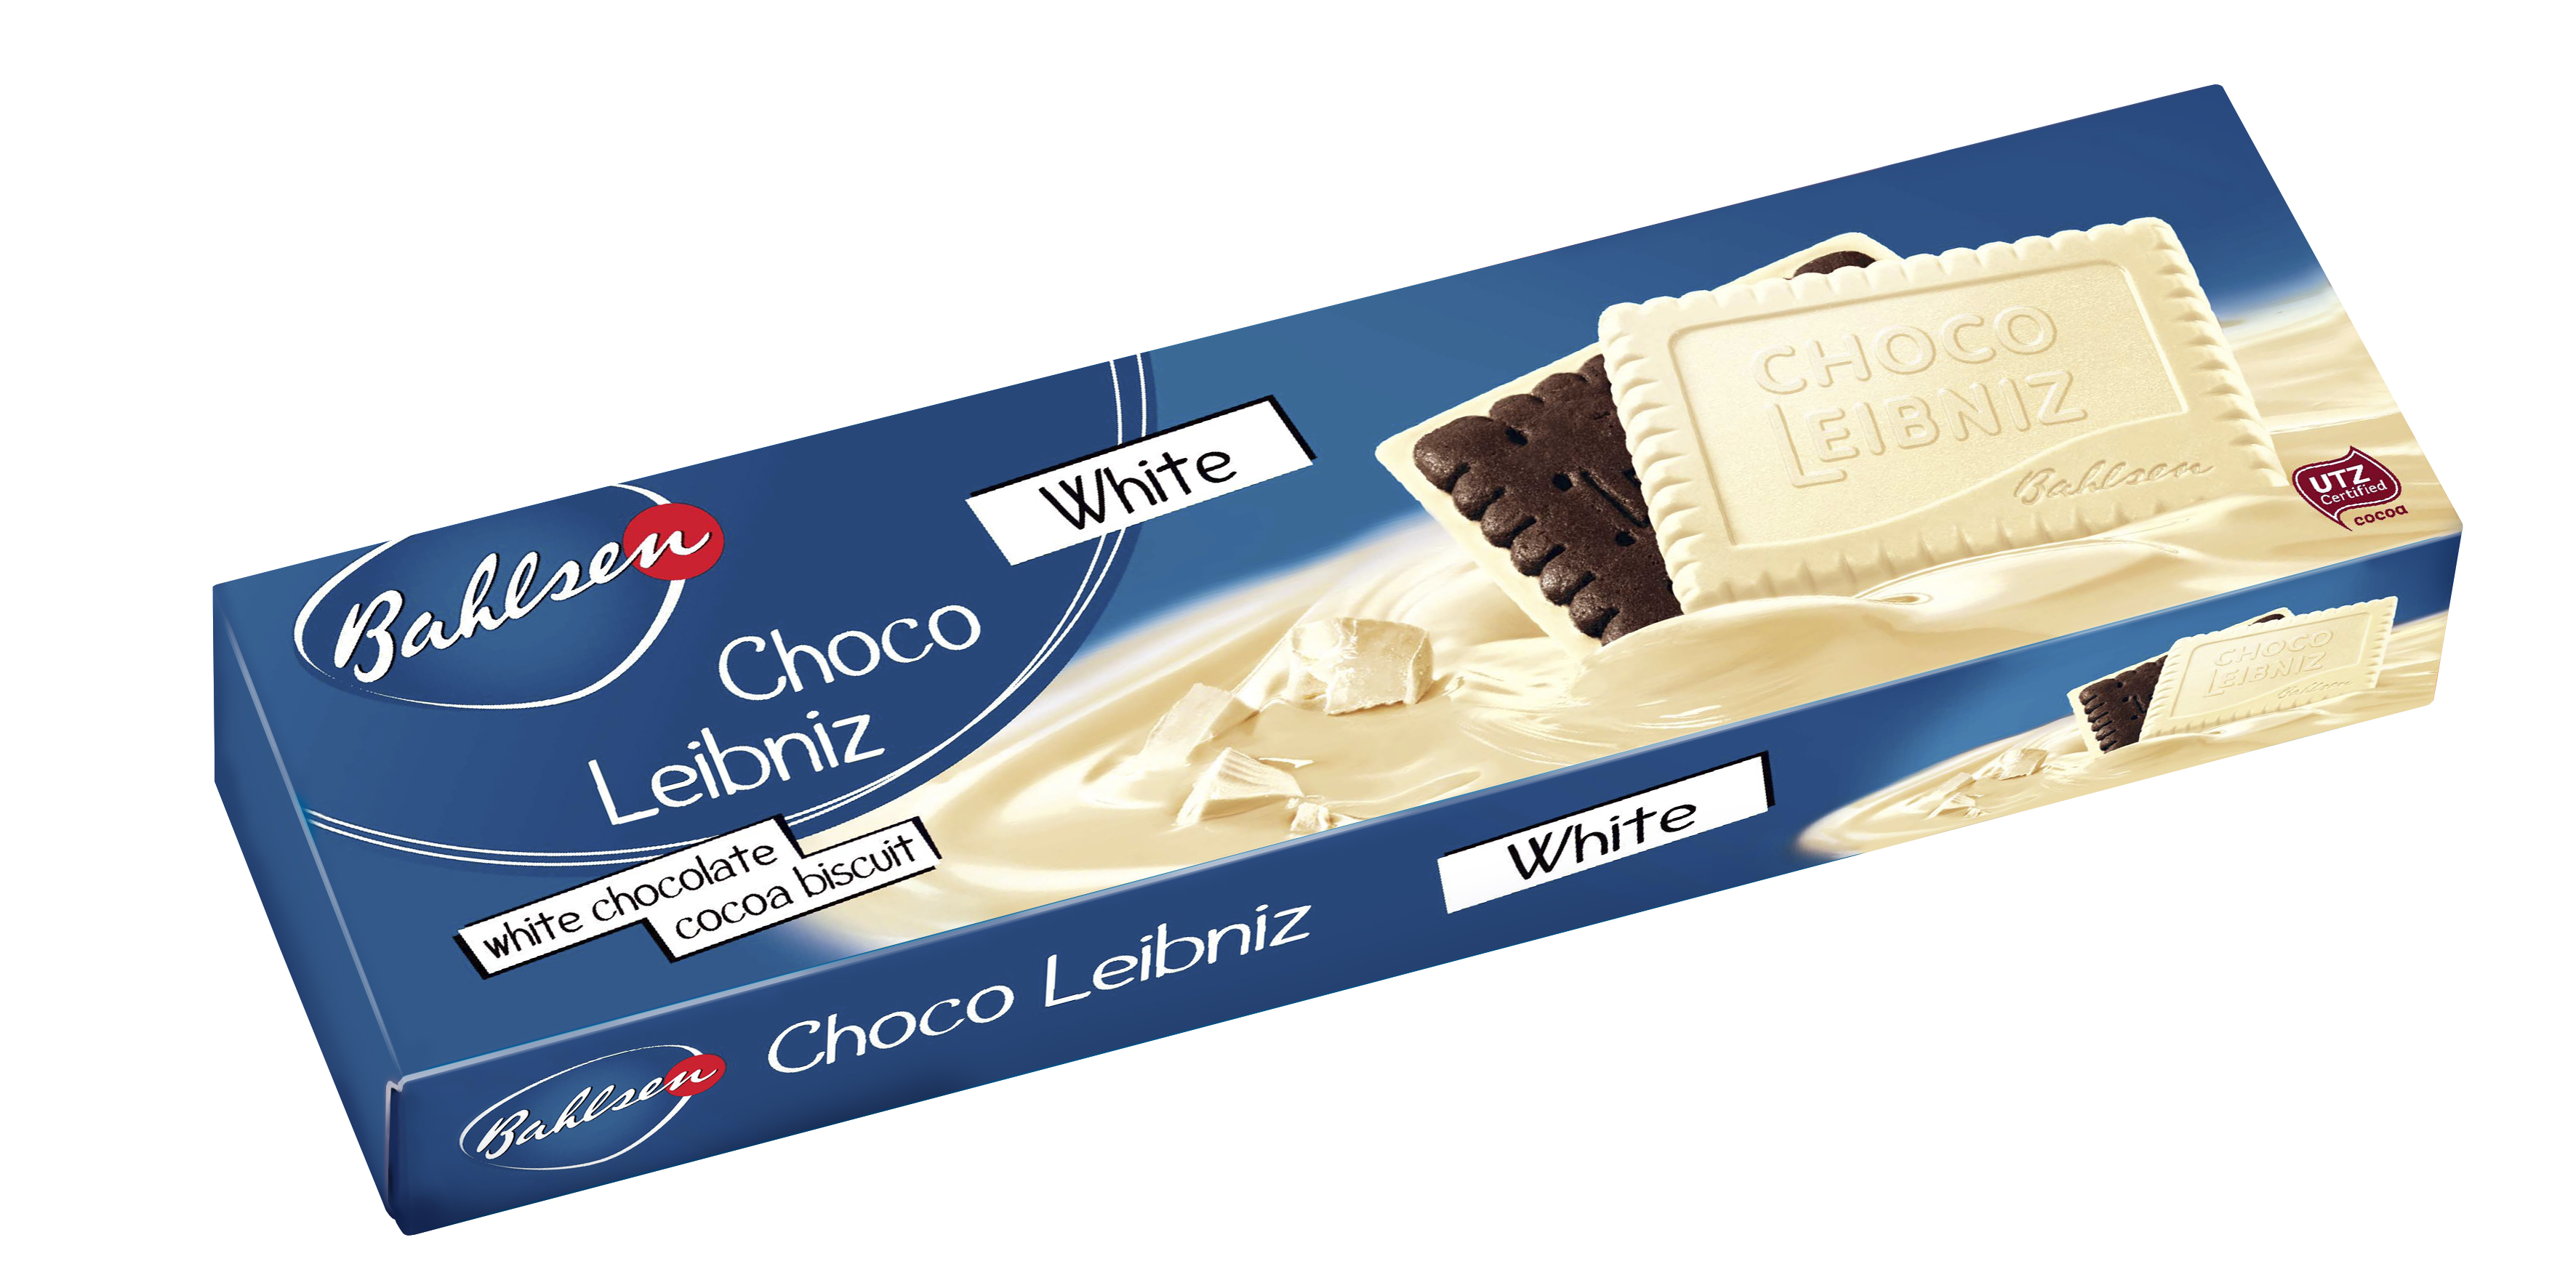 Win A Month S Supply Of The New Choco Leibniz White